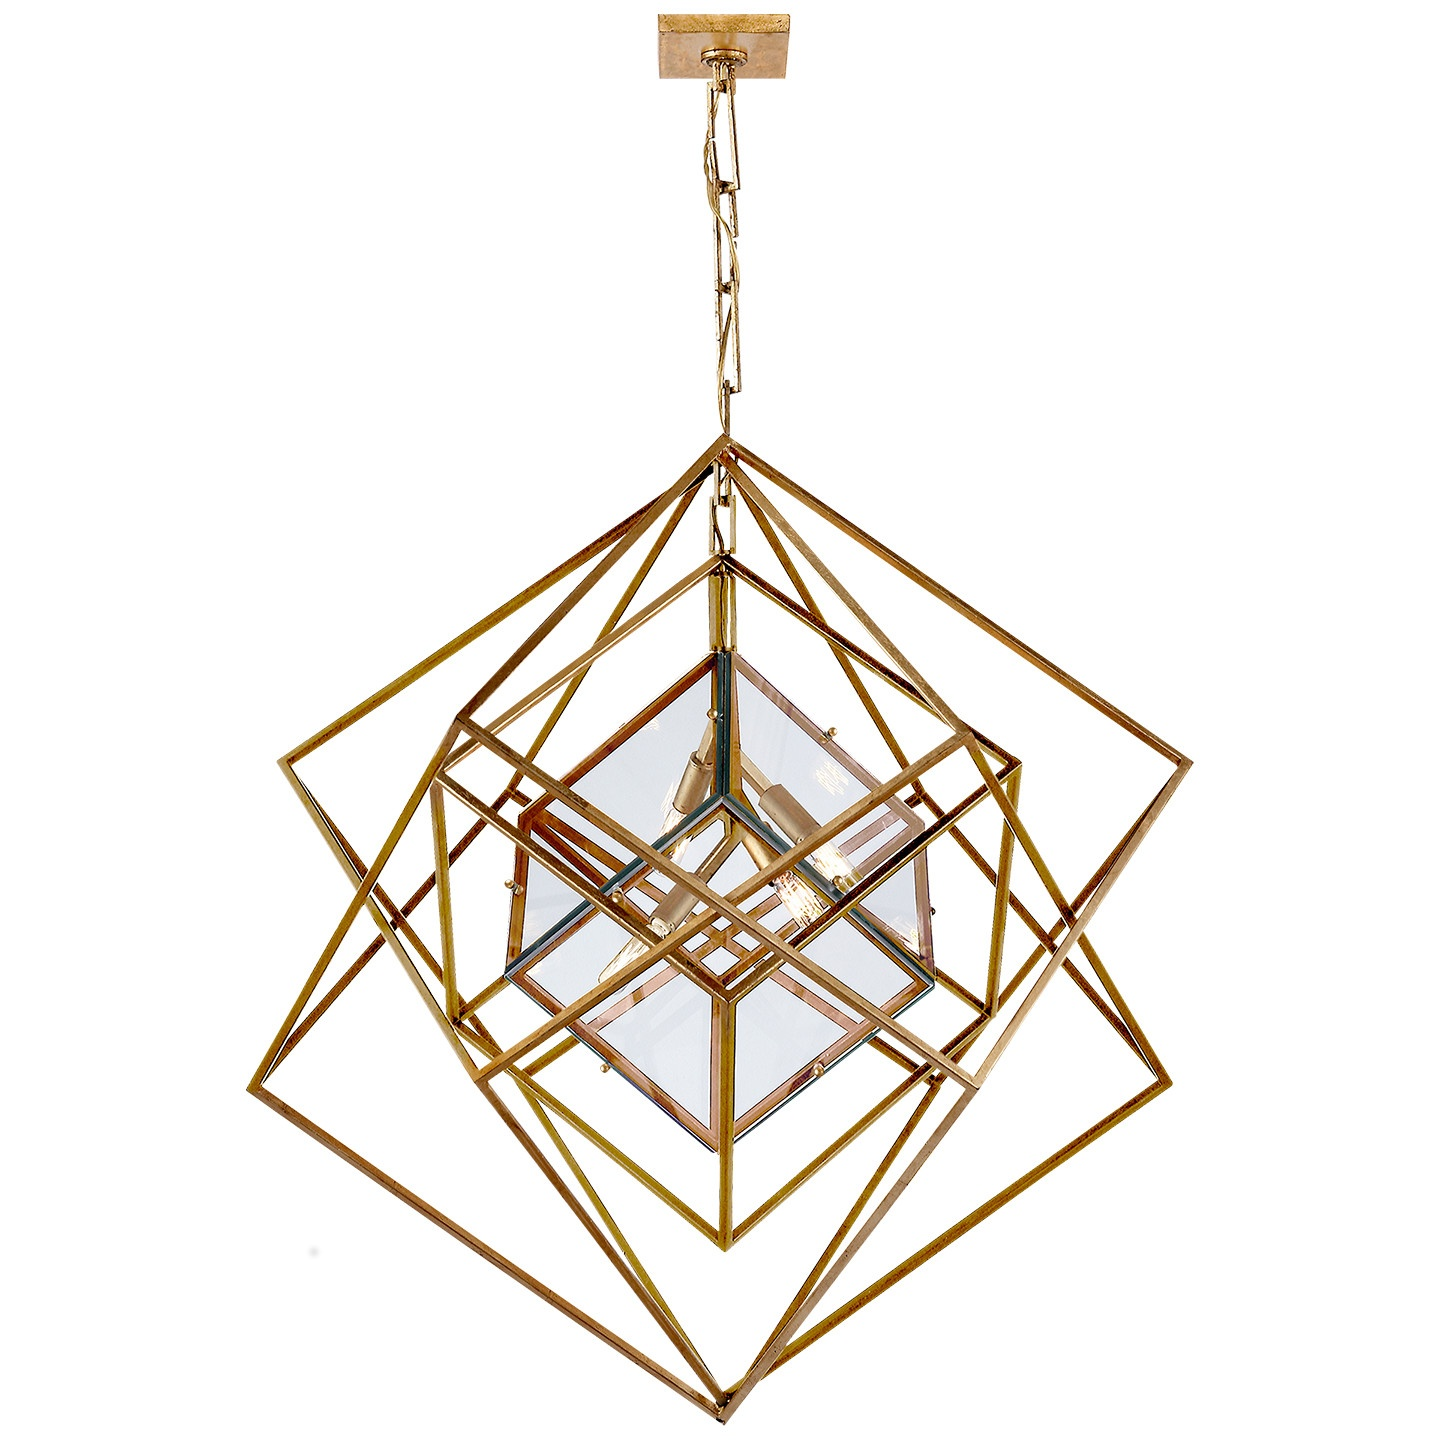 We're big fans of the Cubist Chandelier!